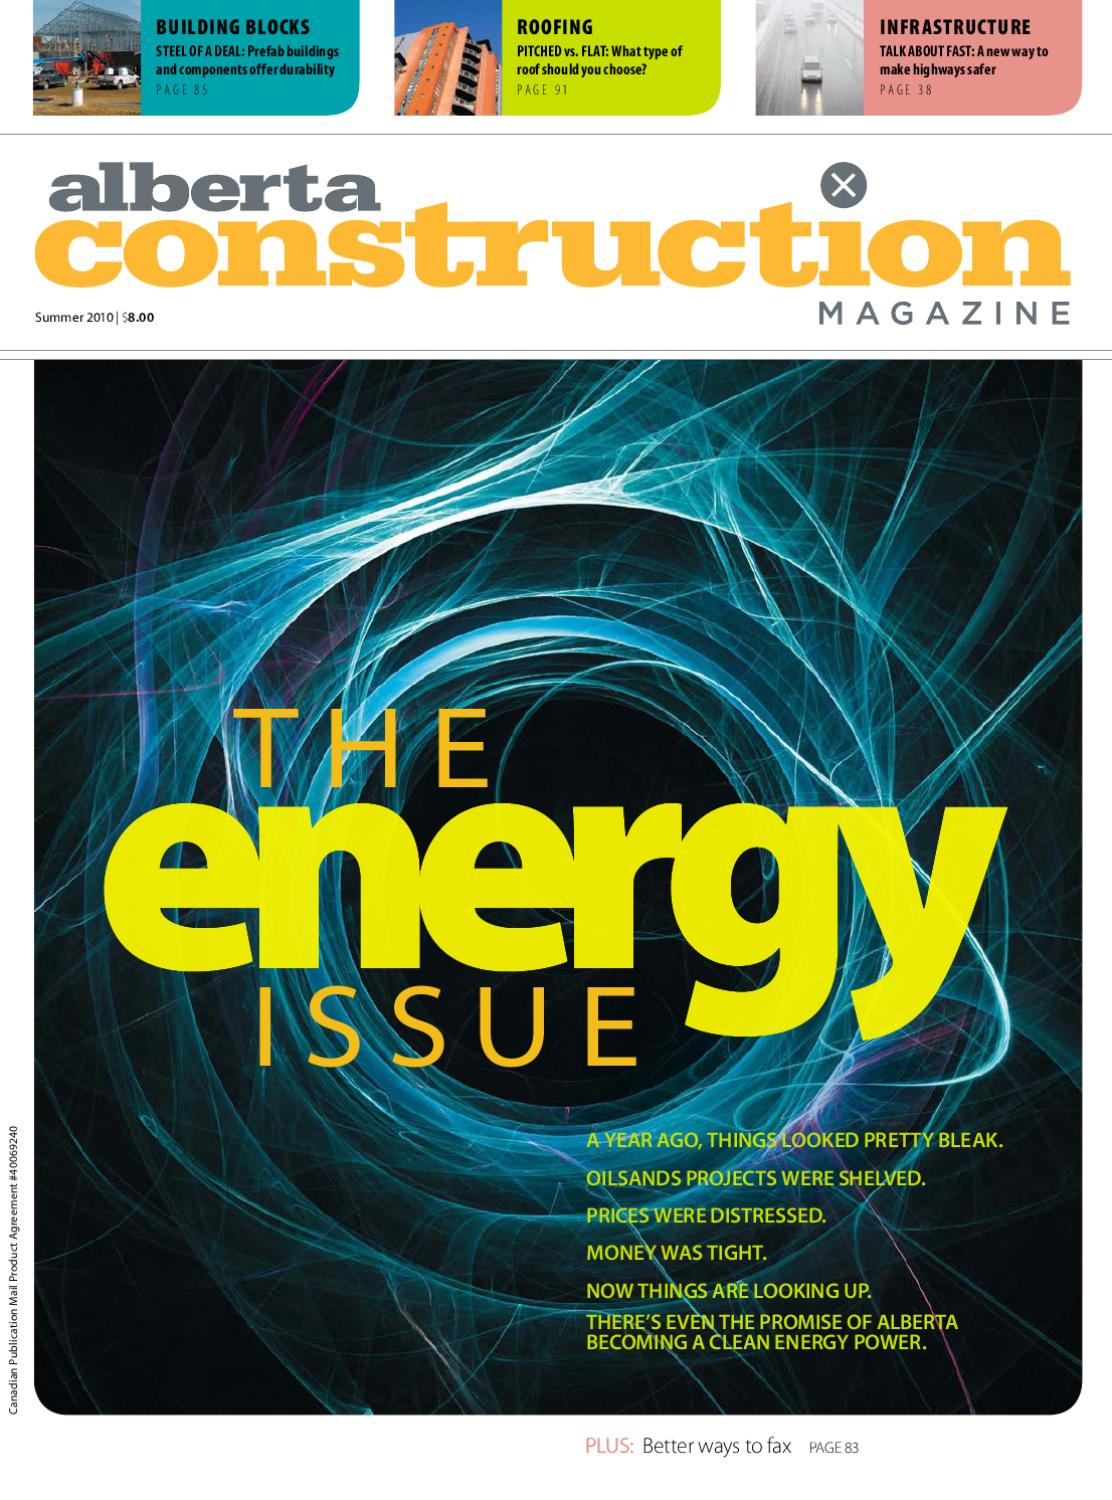 Alberta Construction Magazine Summer 2010 By Jwn Trusted